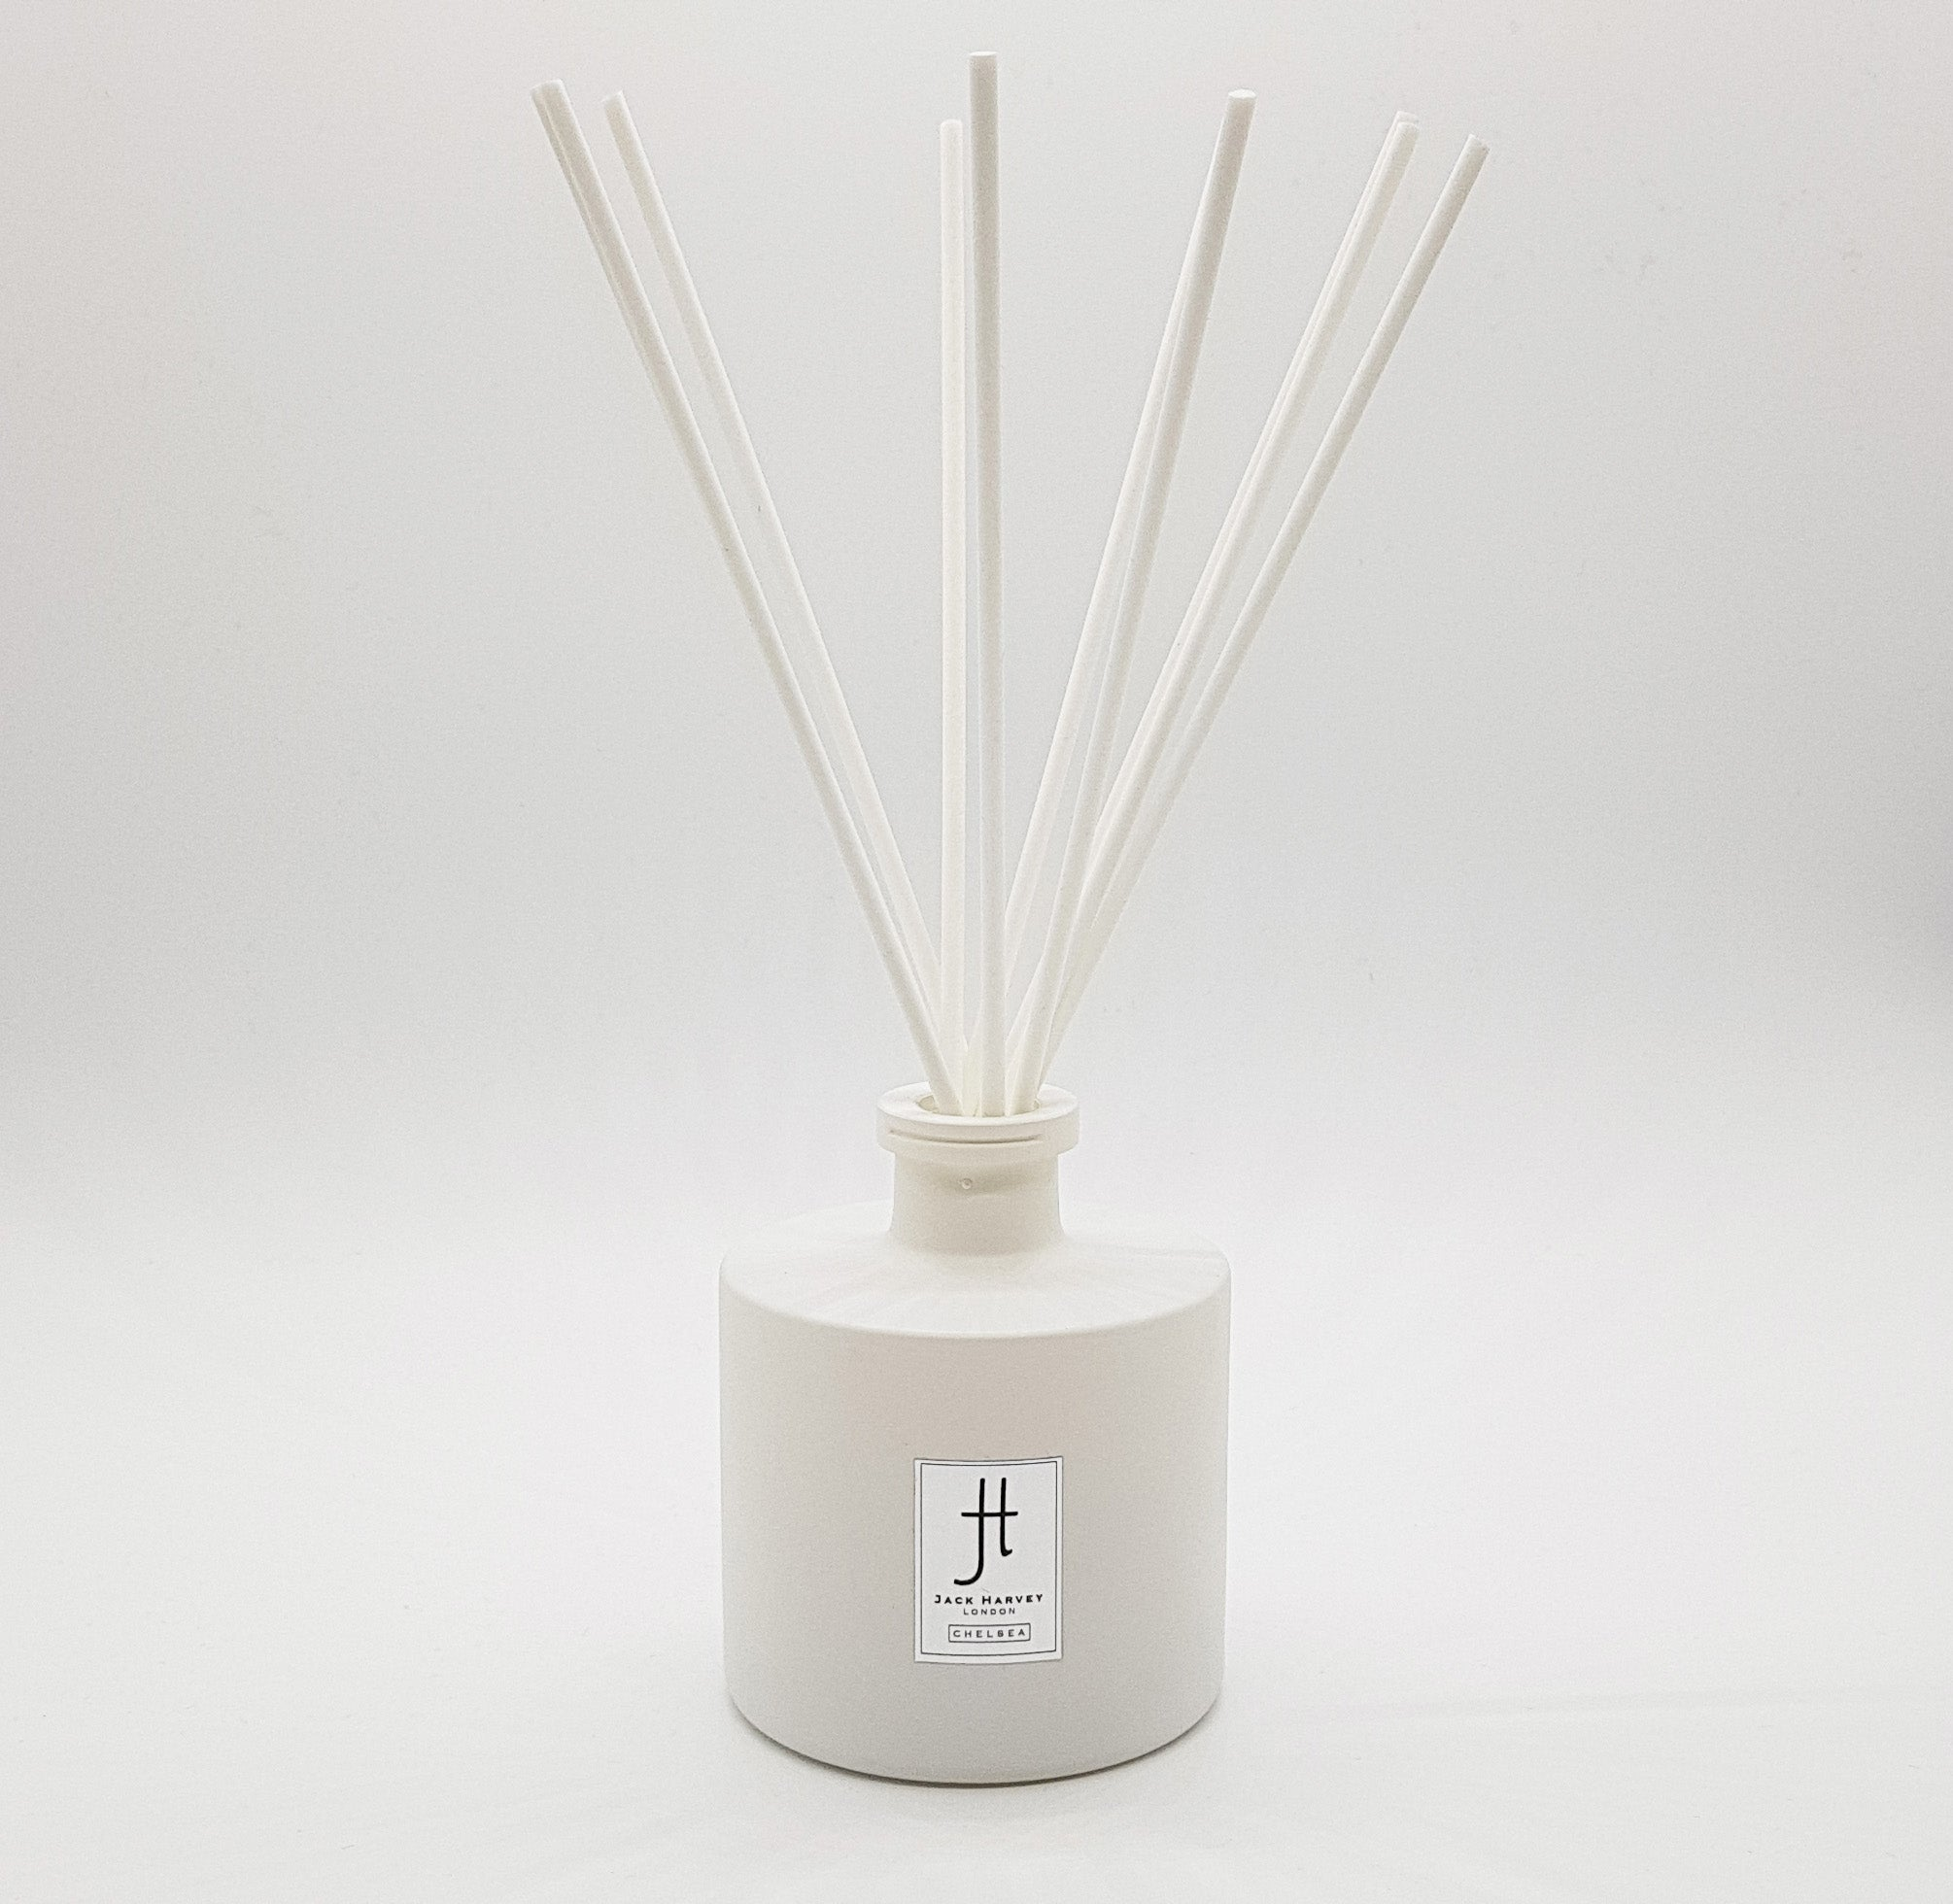 MAYFAIR - LUXURY REED DIFFUSER BRAND NEW 200ml